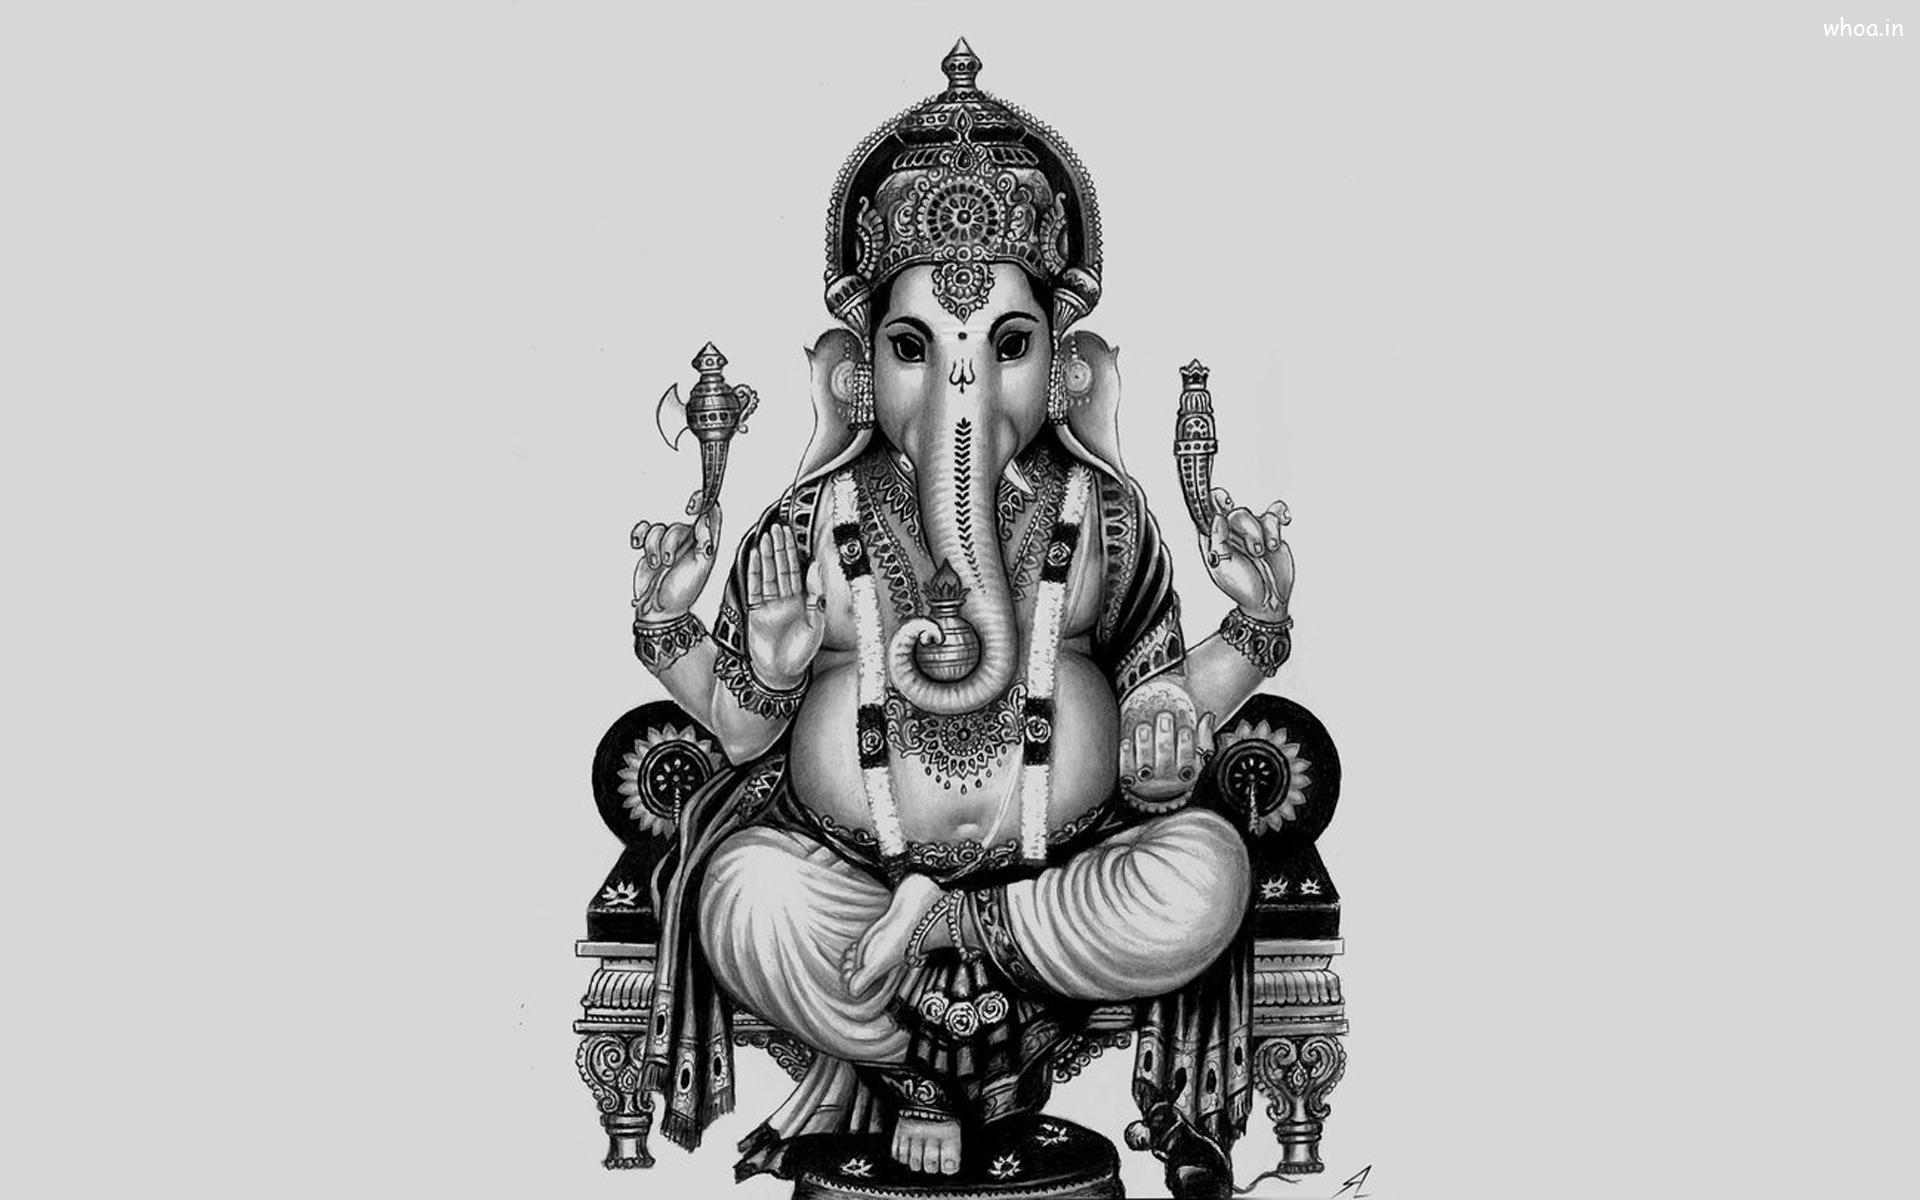 Amazing Wallpaper Lord Vinayagar - ganesh-ji-black-and-white-wallpaper  Picture_295164.in/download/ganesh-ji-black-and-white-wallpaper